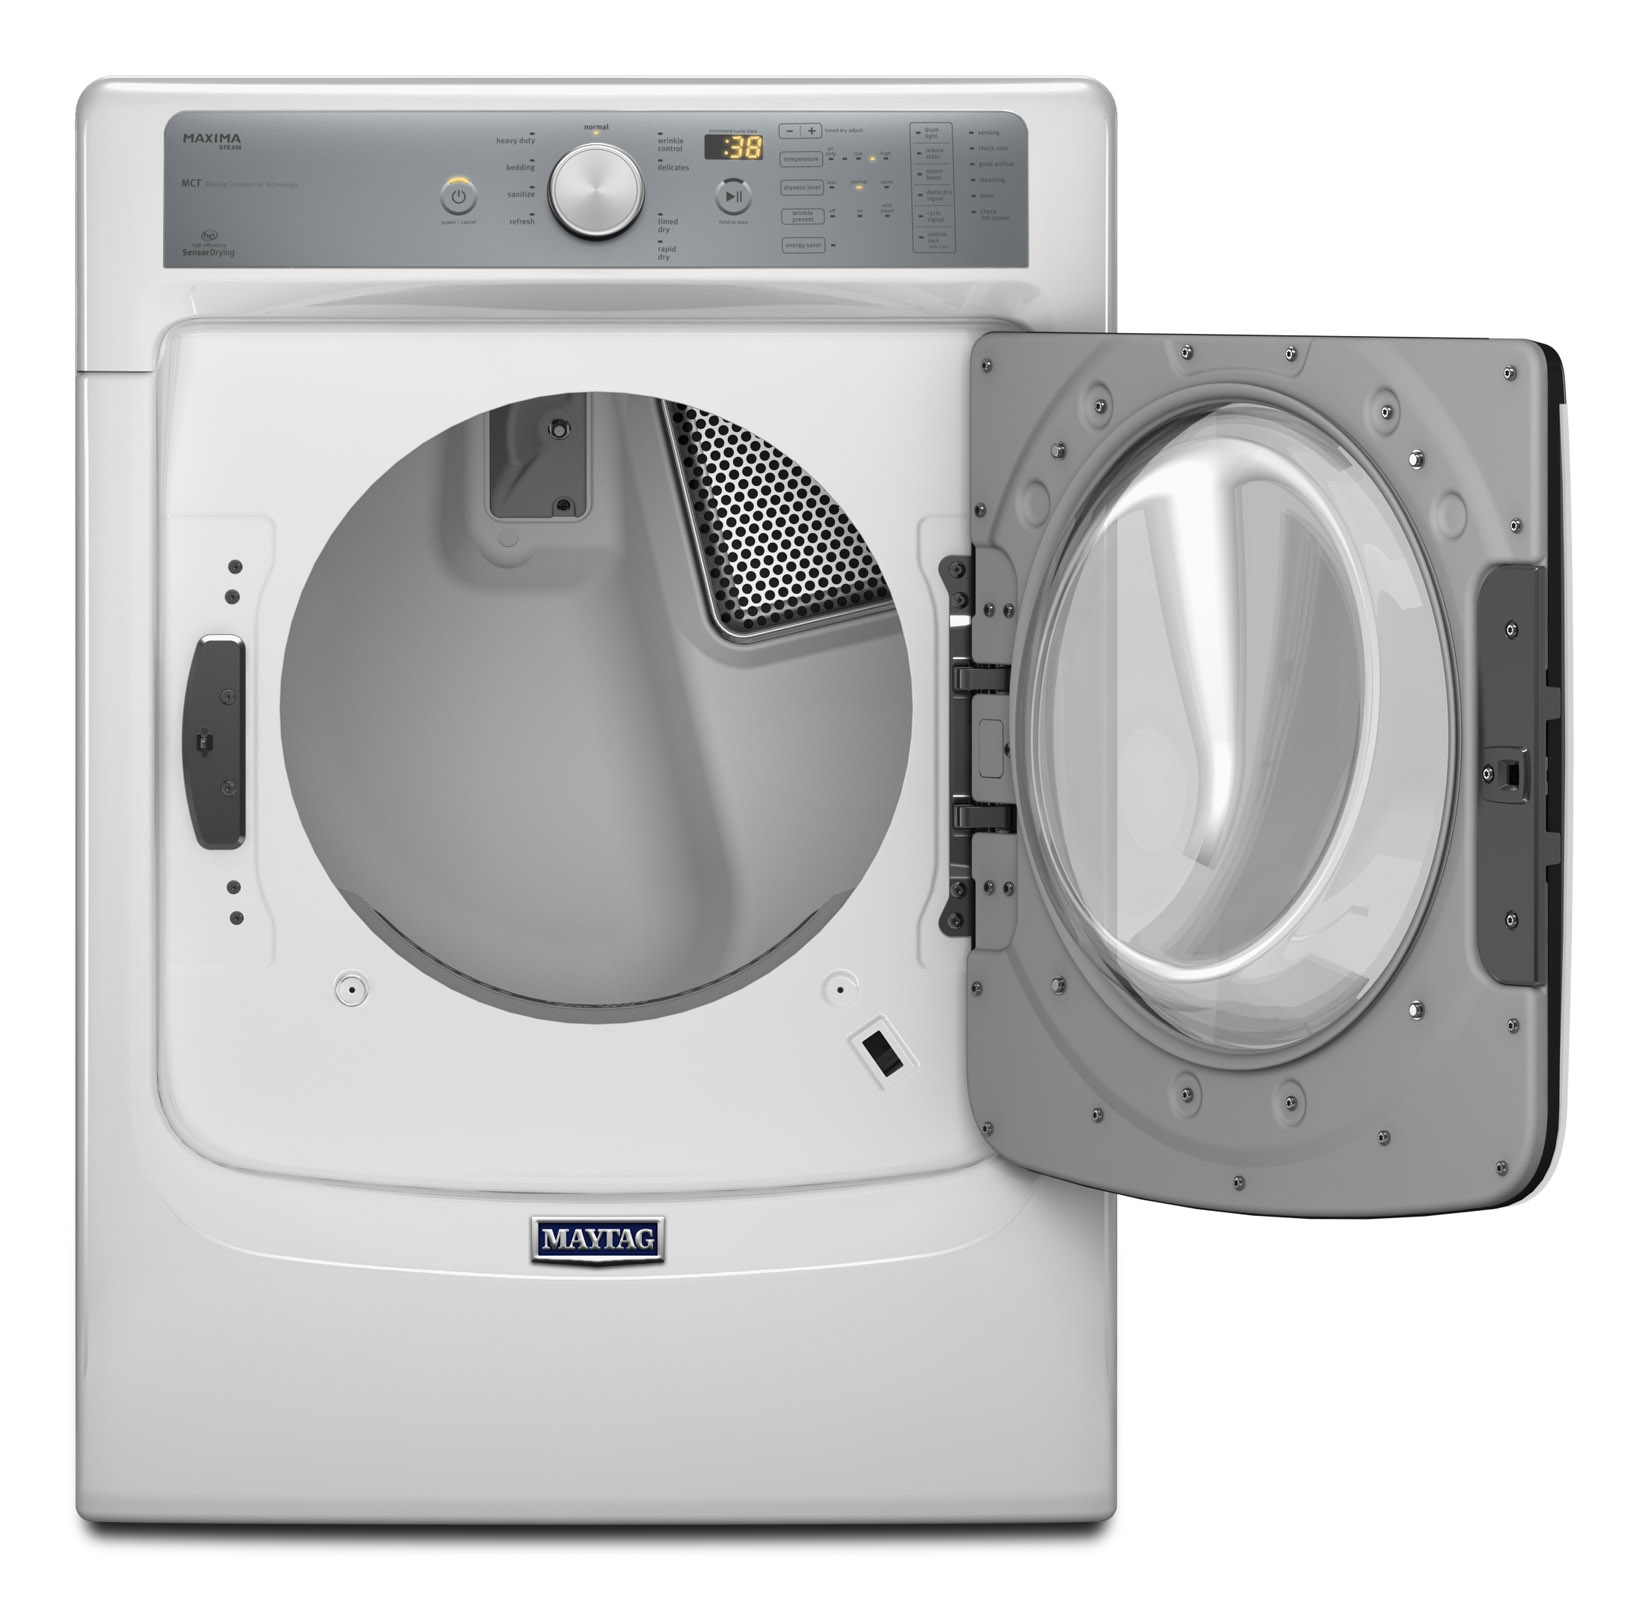 Maytag 7.4 cu. ft. Maxima® Gas Dryer w/ Stainless Steel Drum - White